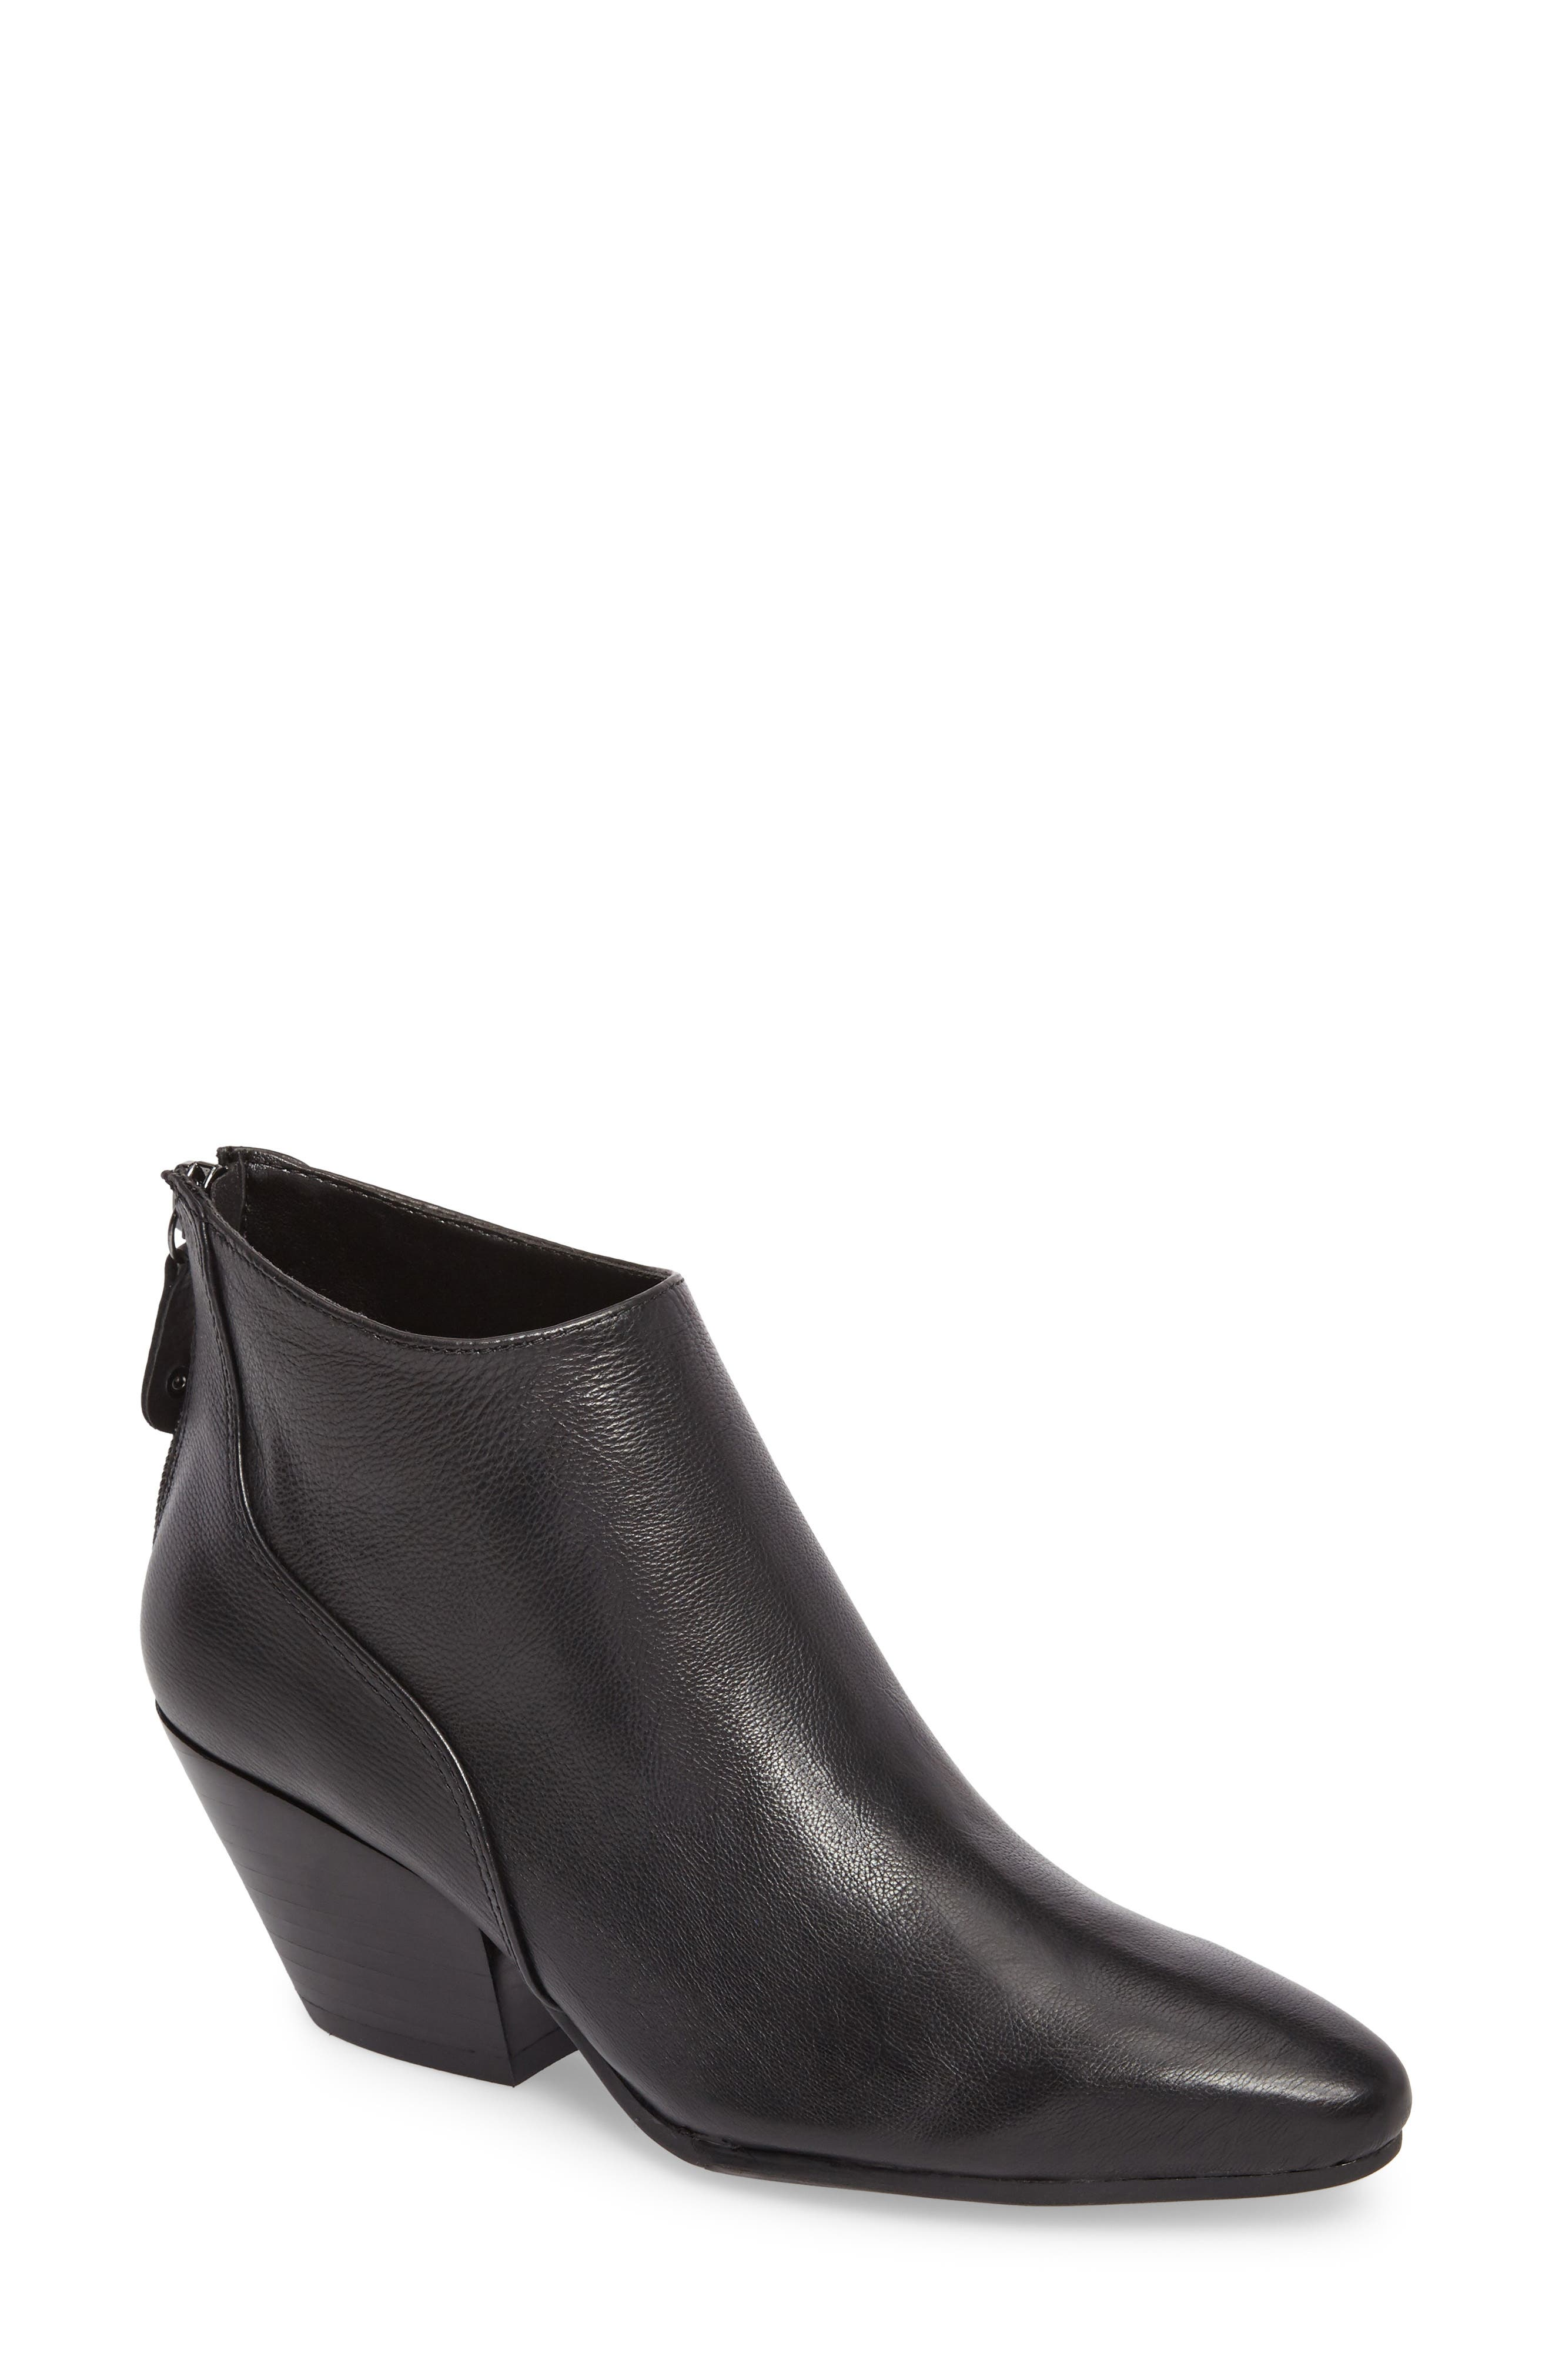 Ruby Bootie,                         Main,                         color, Black Leather